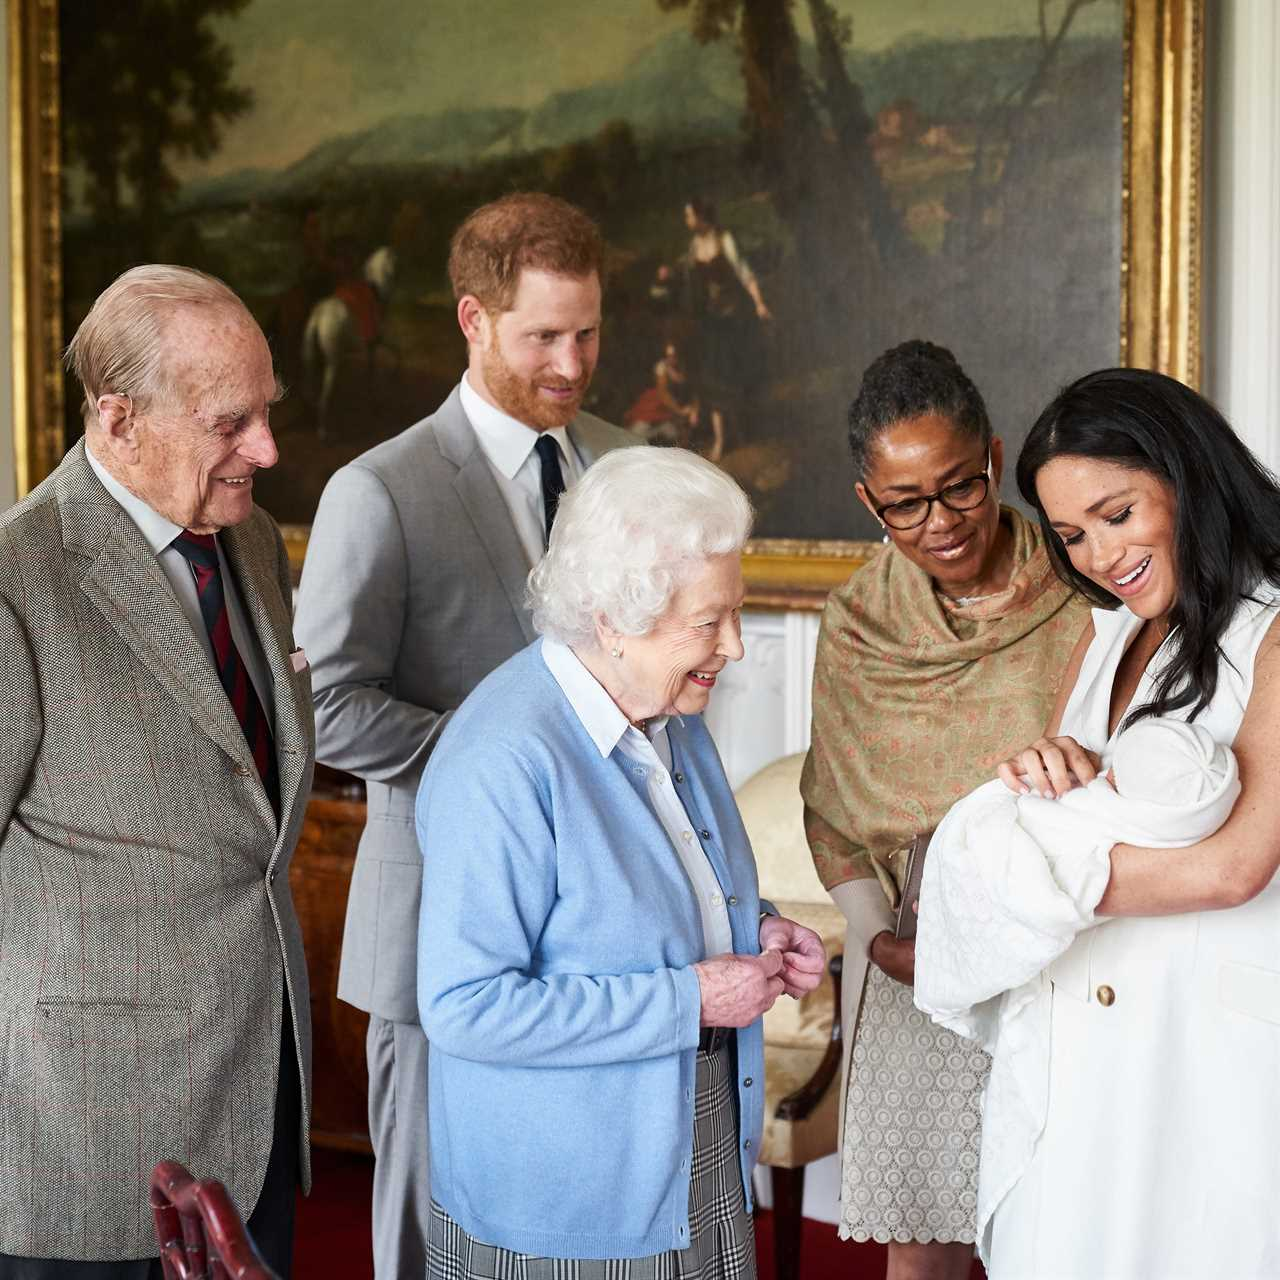 The Queen with the Sussexes' first born, Archie